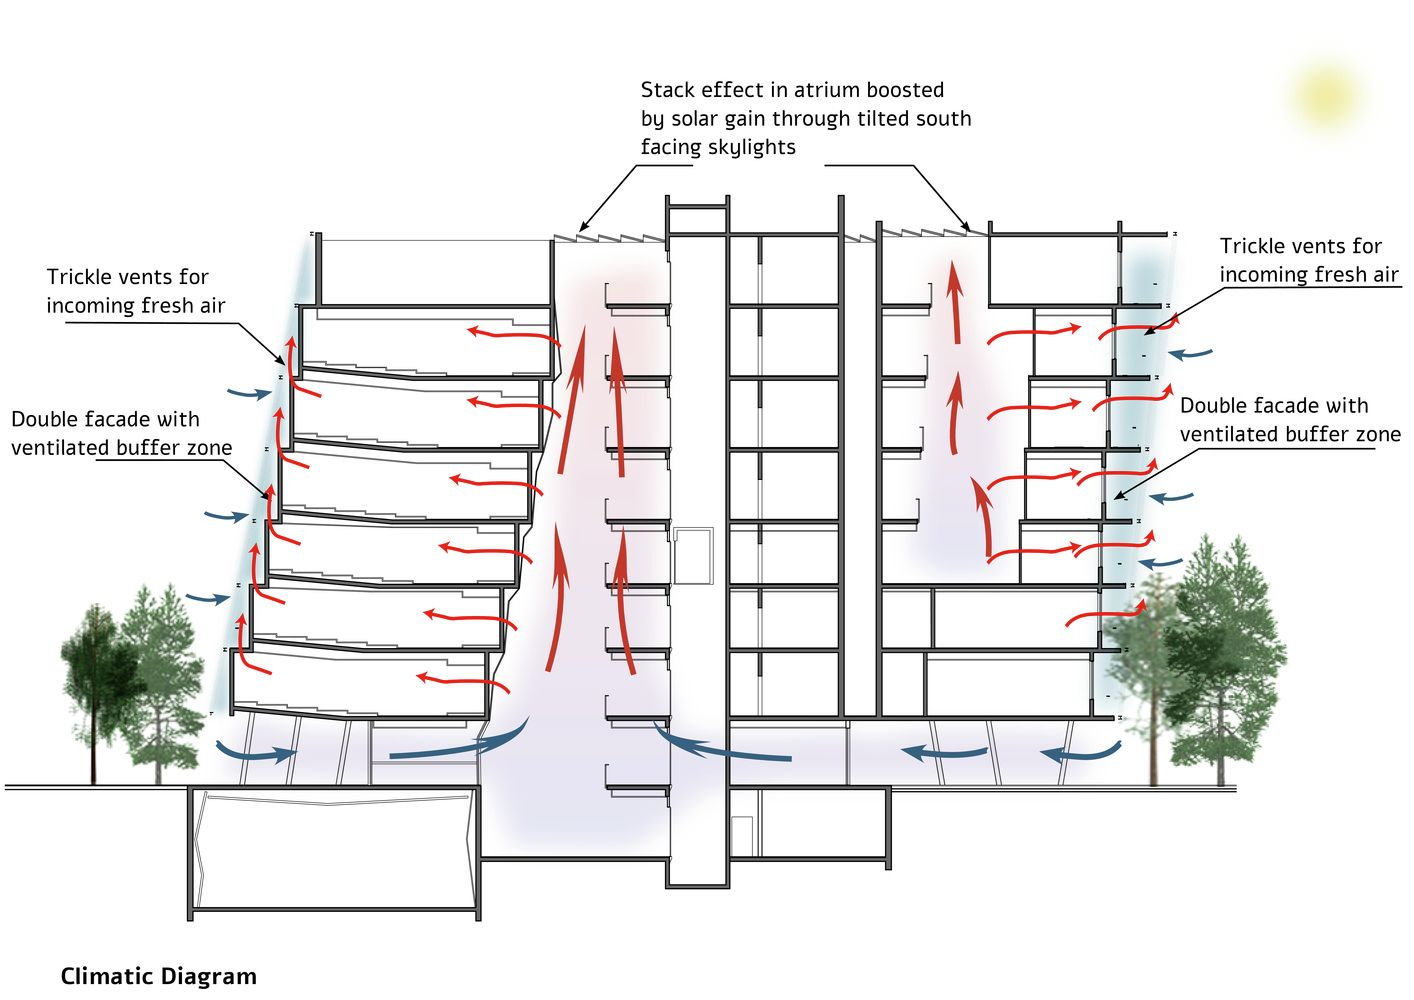 Gallery Of O2a S Proposed Tel Aviv University Building Controls Natural Light And Wind For A Sustainable Solution 10 Green Building Design Residential Building Design Sustainable Architecture